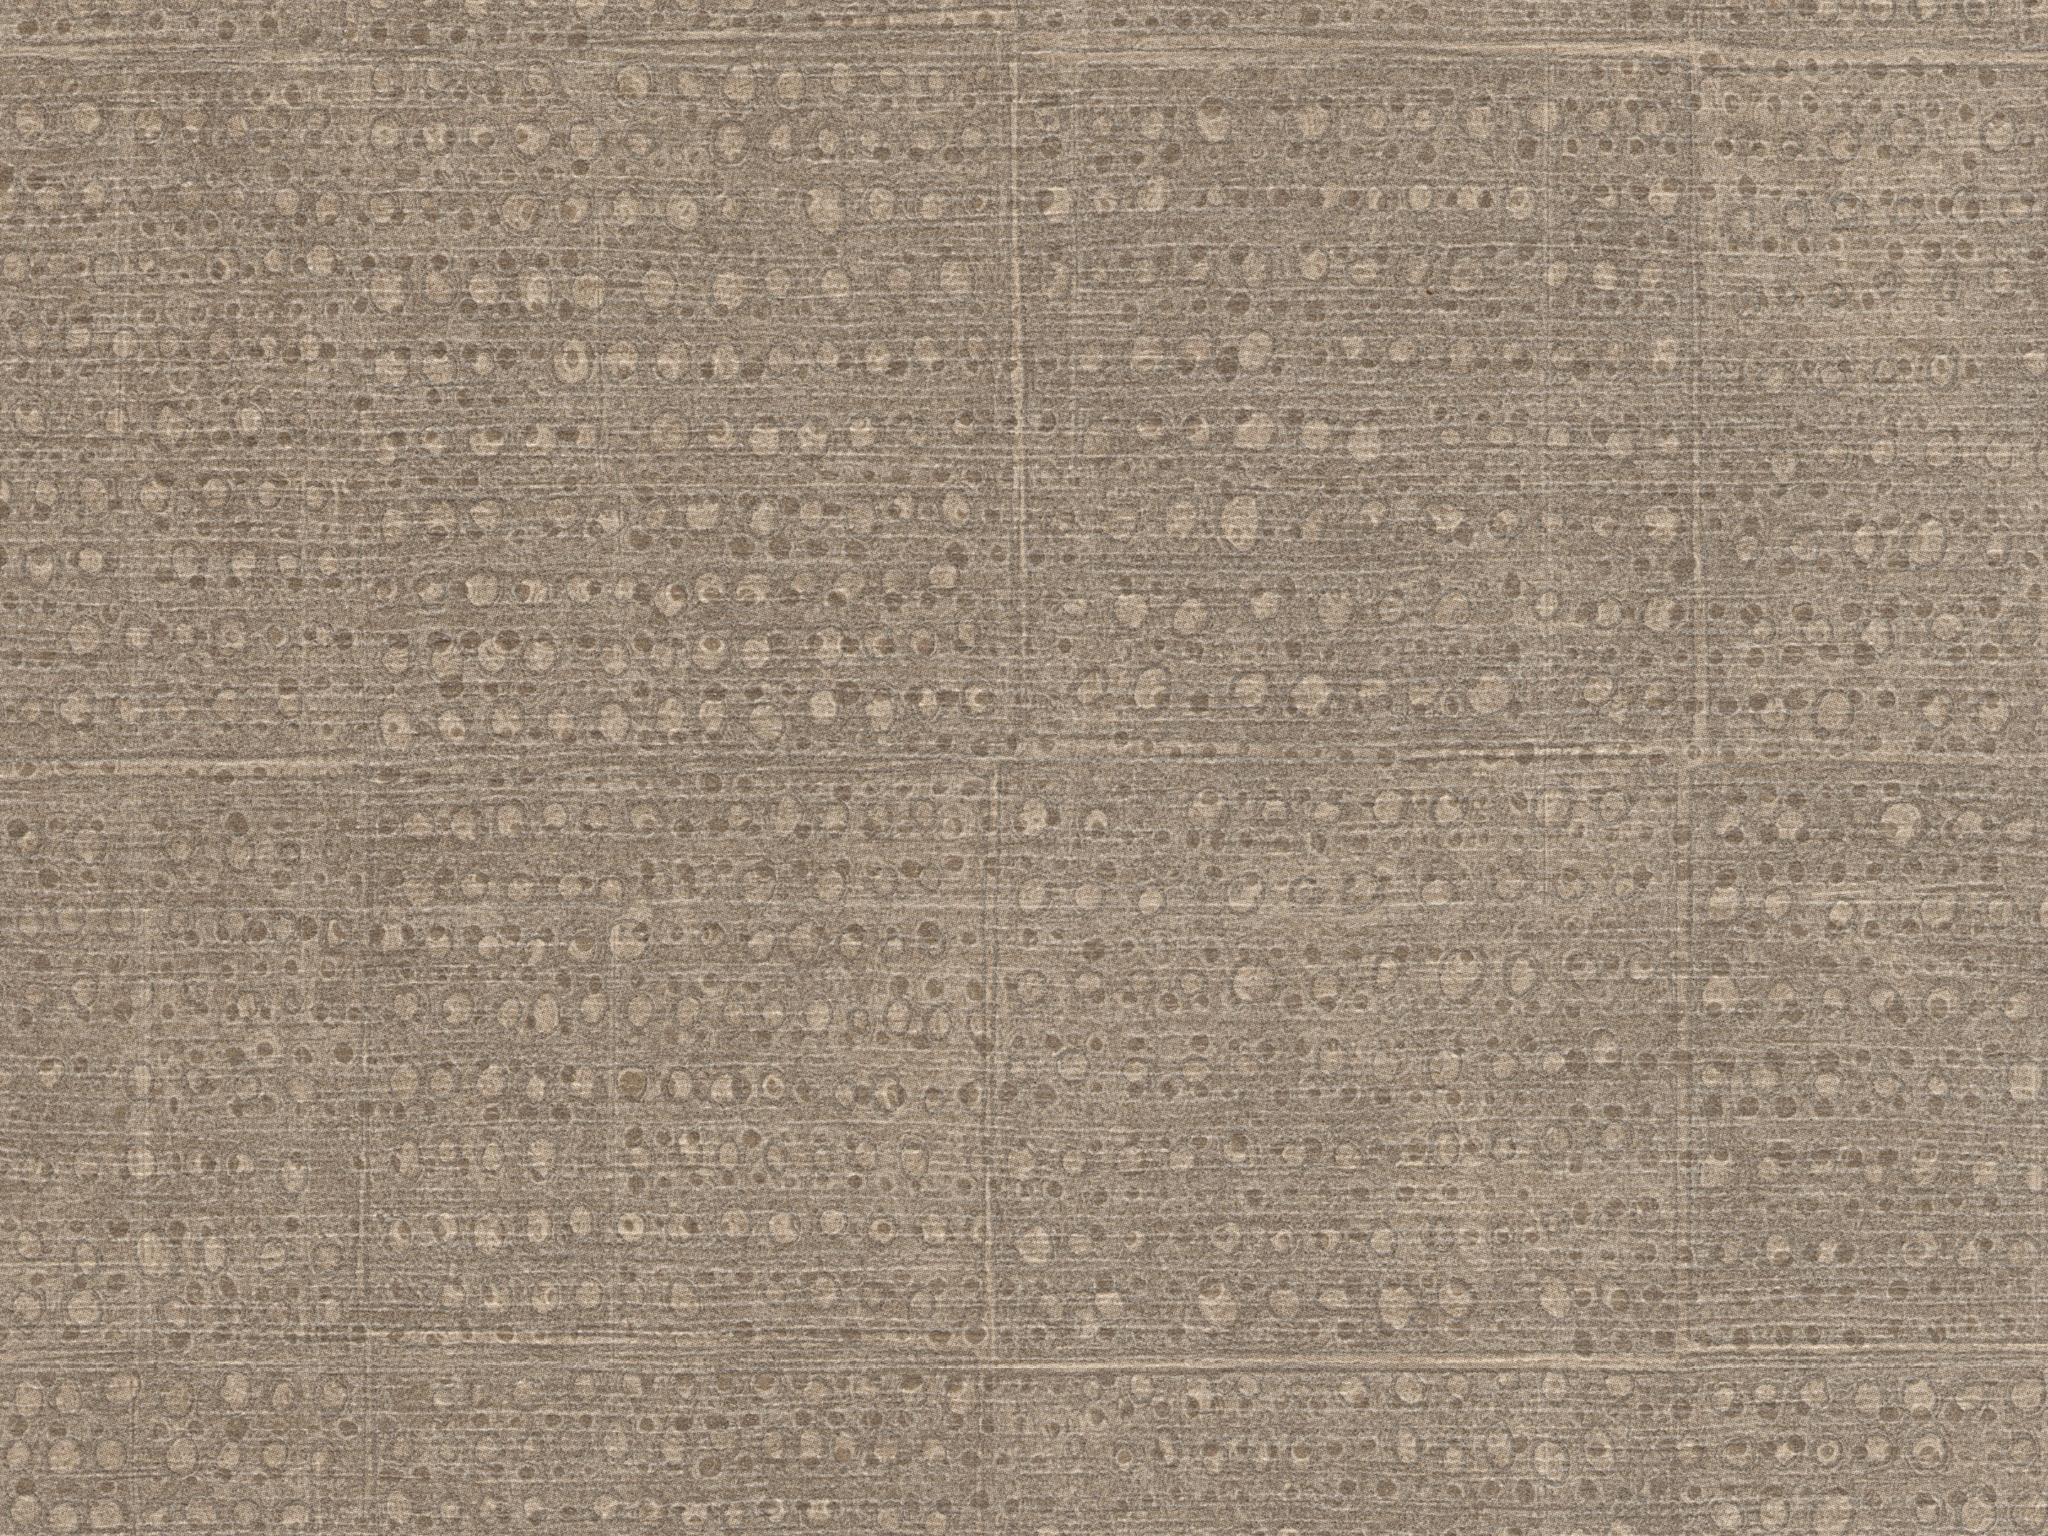 MAY_Decor_Accent-LaredoKhaki-6